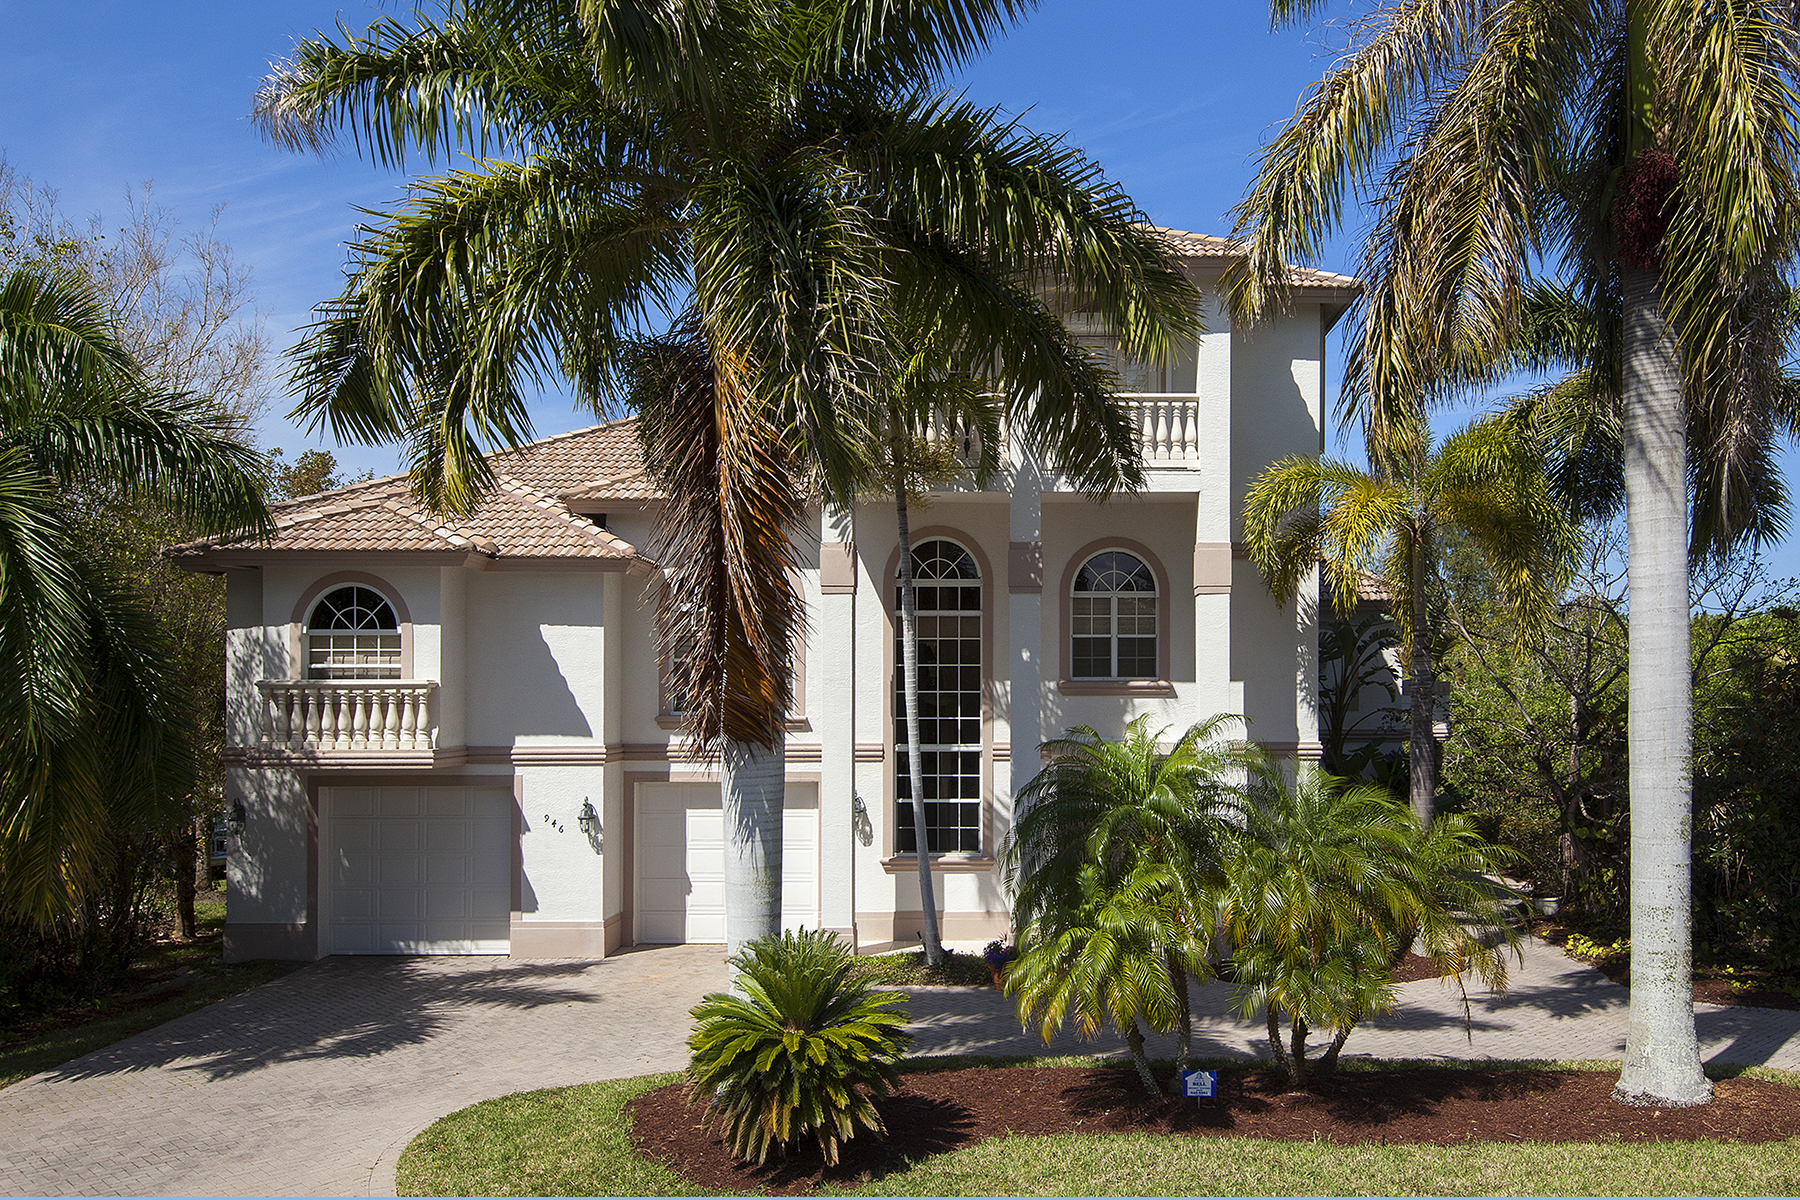 Single Family Home for Sale at HIDEAWAY BEACH - MARCO BEACH 946 Sand Dune Dr Marco Island, Florida, 34145 United States